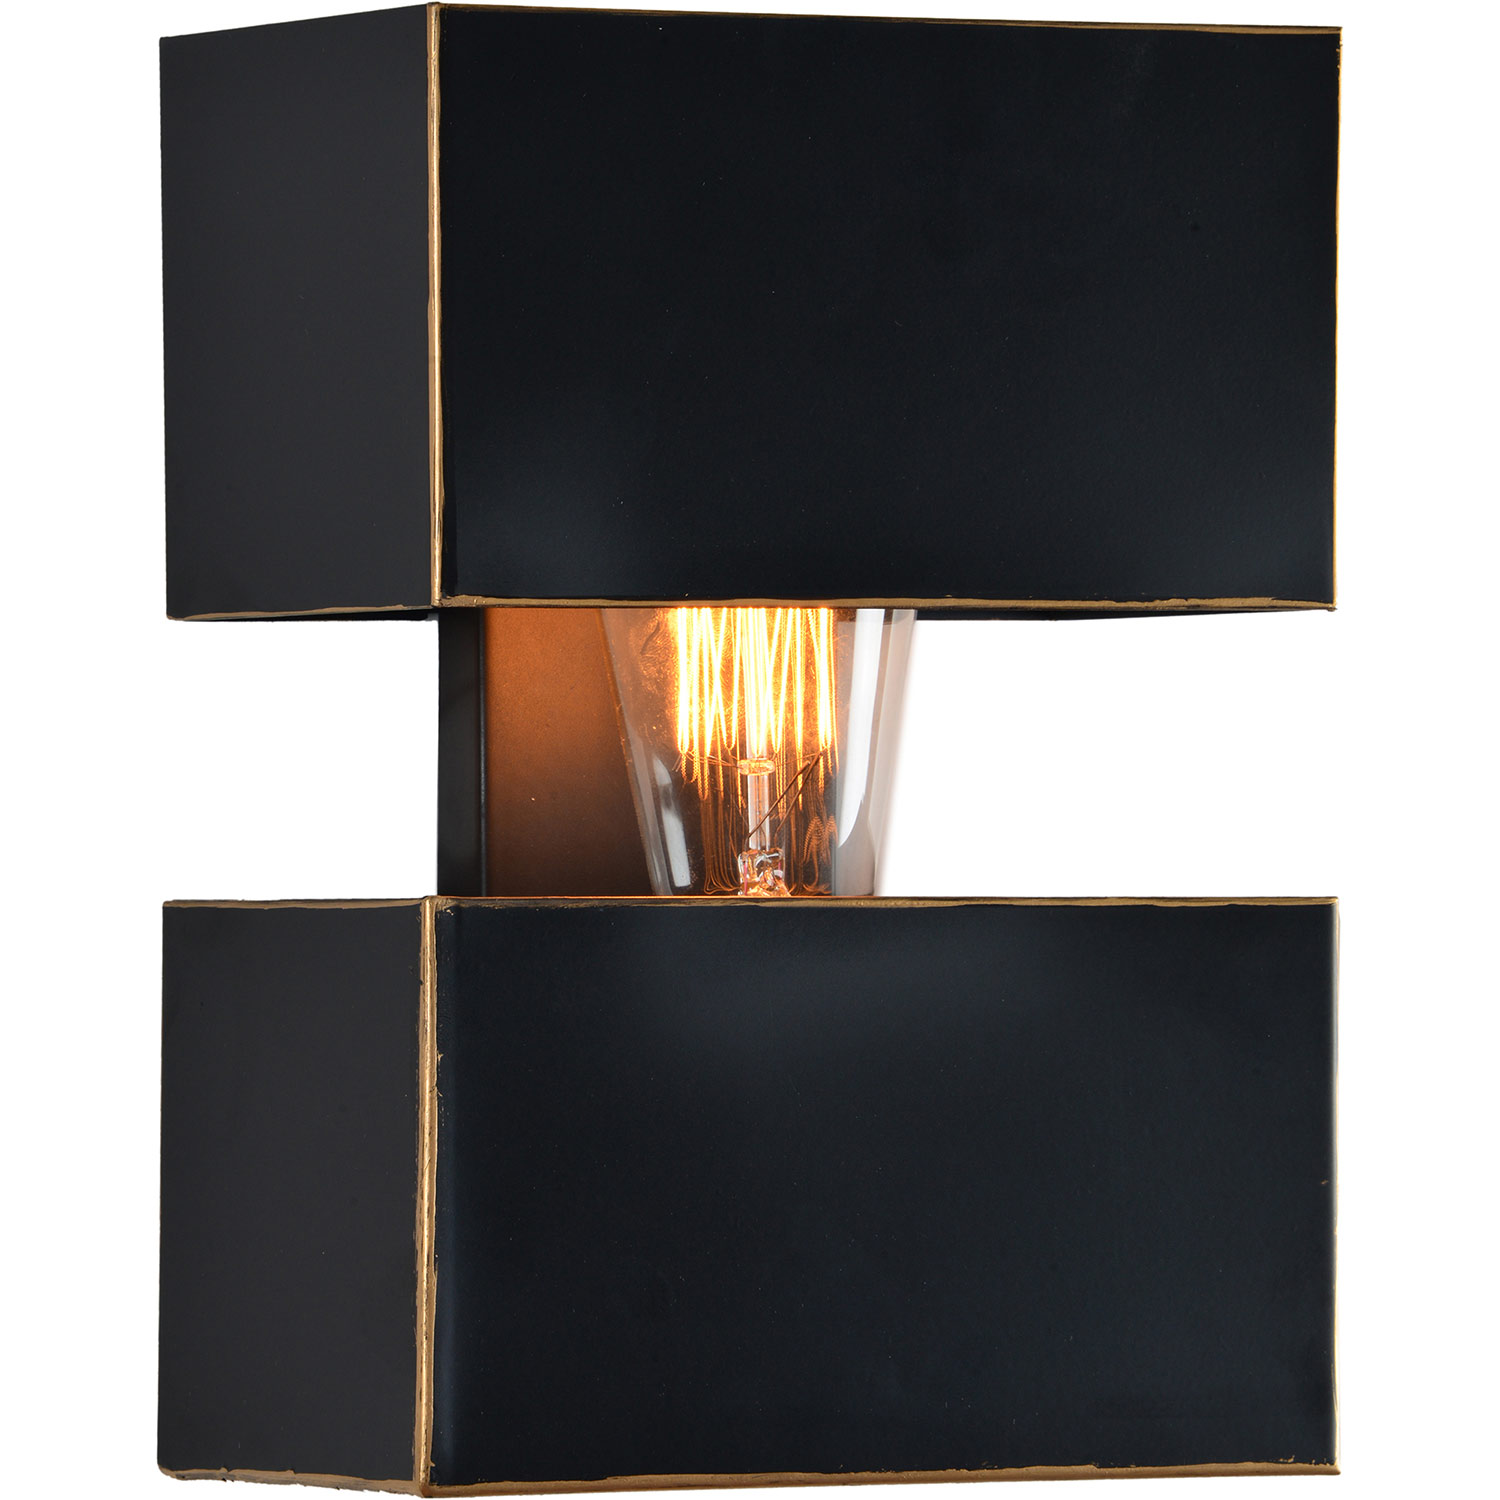 Ren-Wil Trudy Wall Sconce - Oil Rubbed Bronze